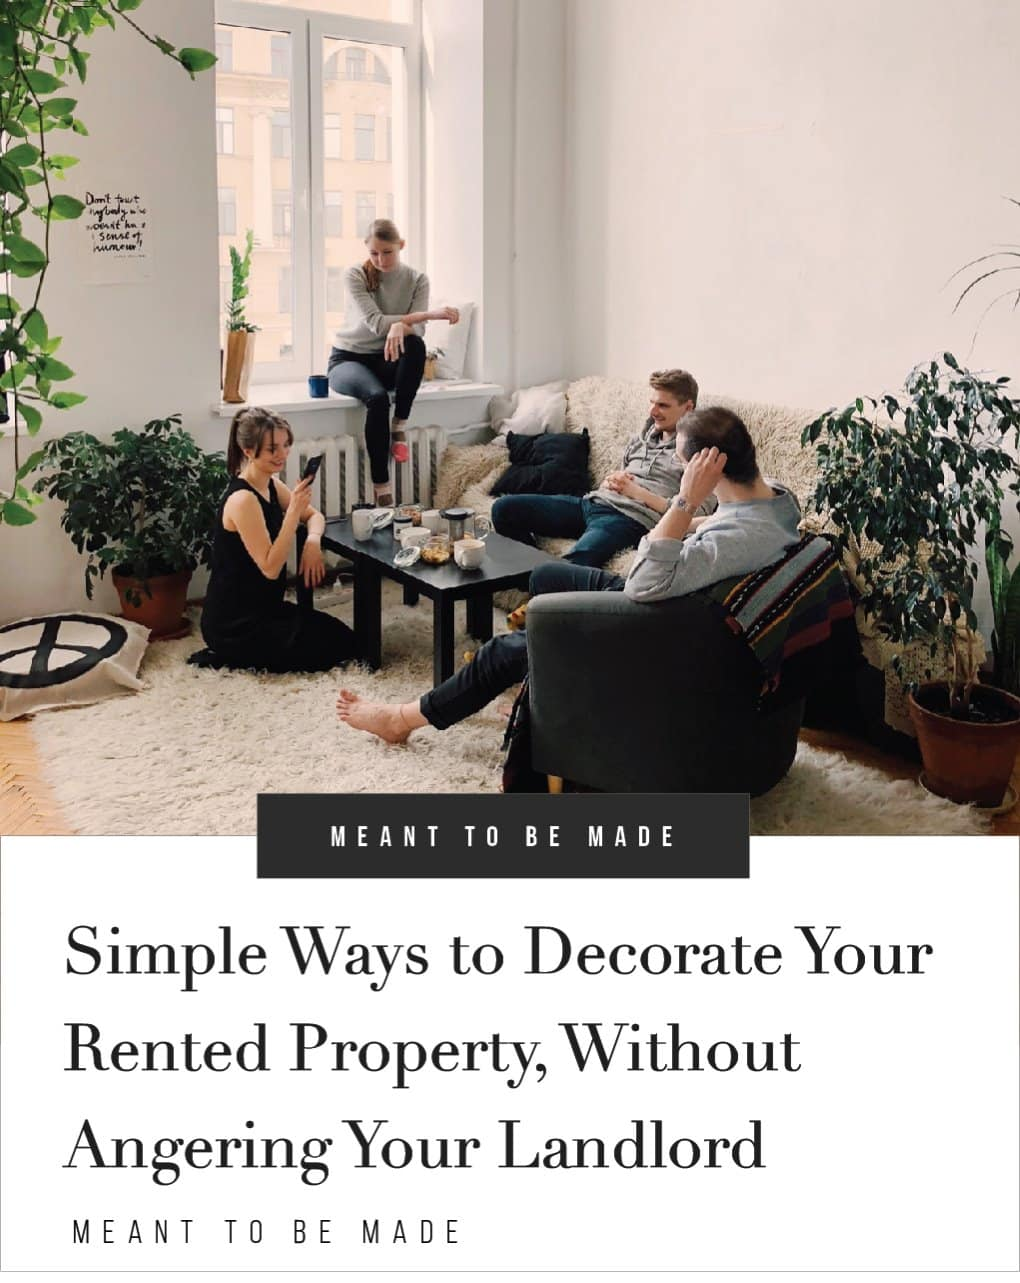 Simple Ways to Decorate Your Rented Property (Without Angering Your Landlord)